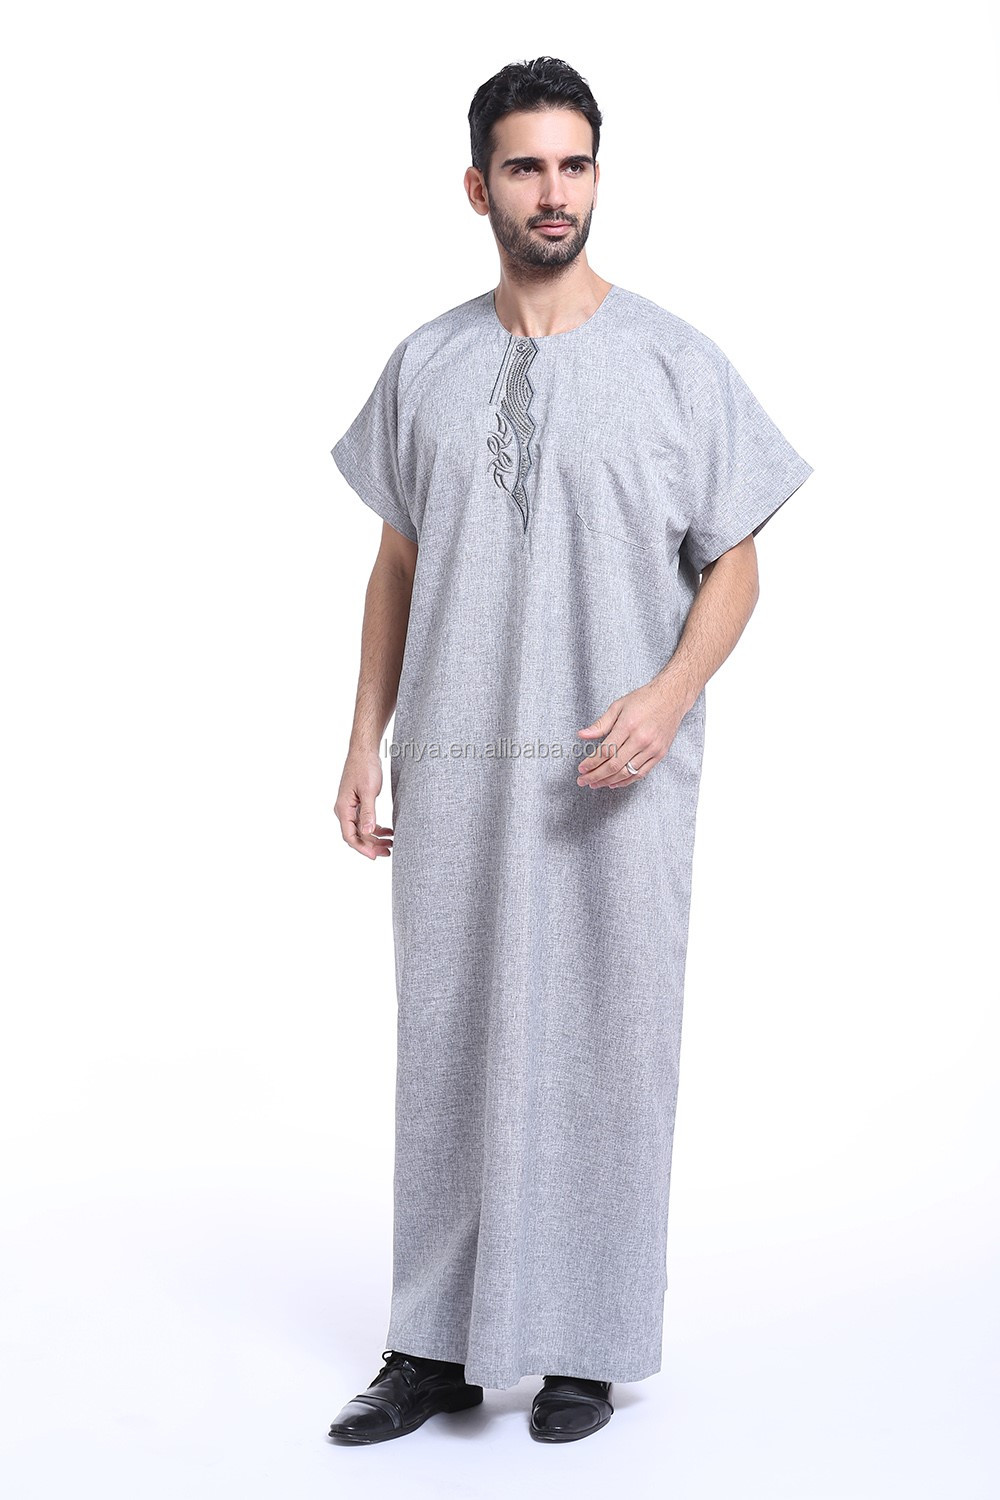 Summer short sleeve men's abaya islamic clothing arab muslim dress wholesale abaya for men